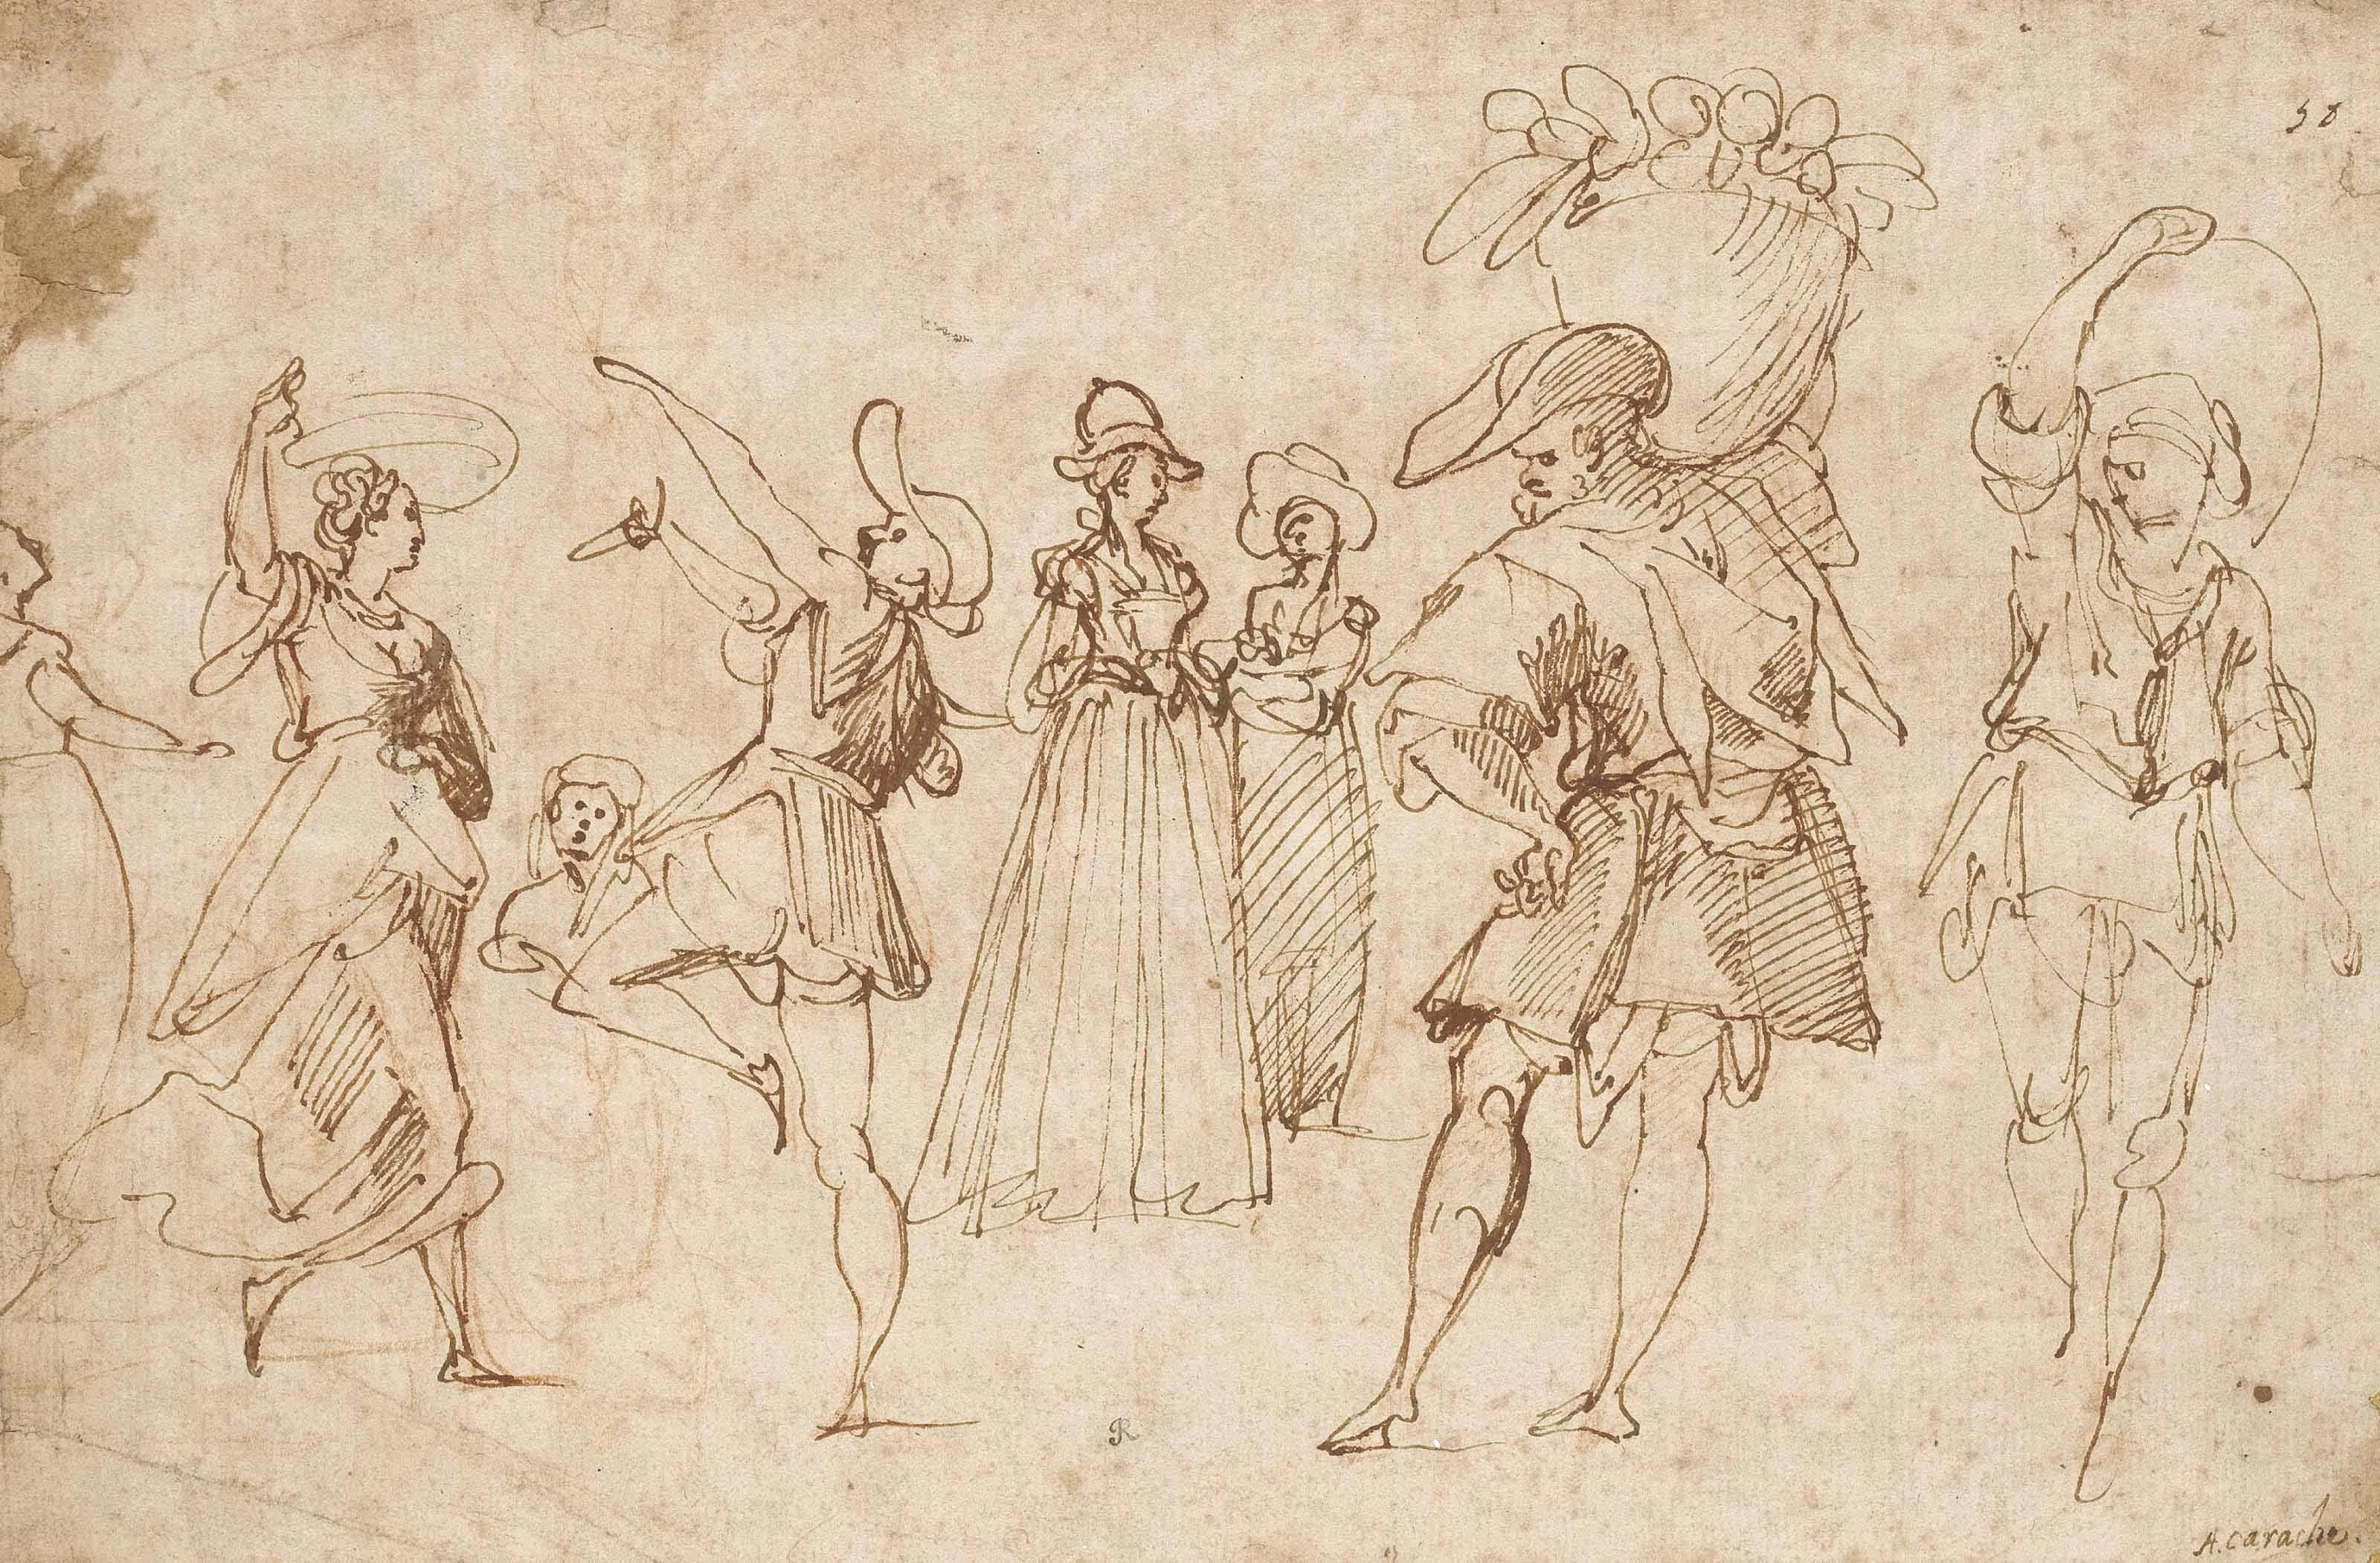 A sheet of figure studies: A man and woman dancing, two elegant ladies, and two men carrying baskets on their shoulders